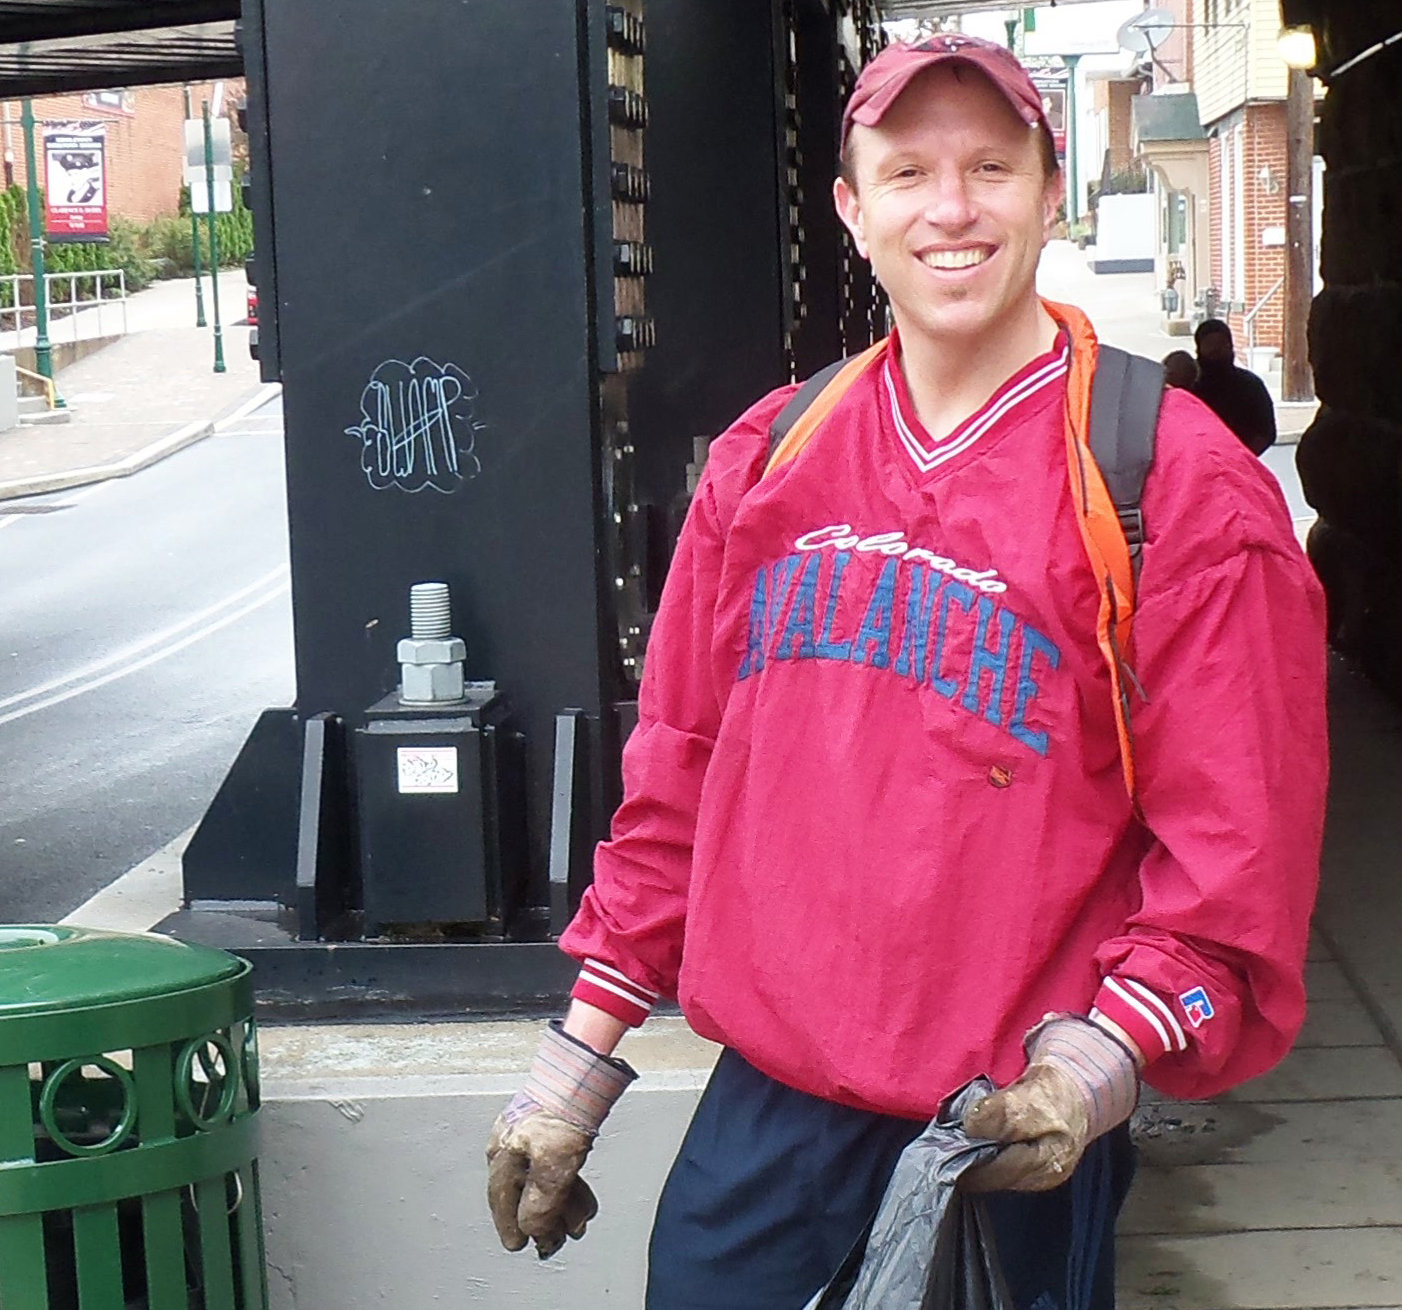 Scott Sites helps out during Middletown Communities That Care's first Community Clean-Up Day on May 4. Sites formerly served on Middletown Borough Council and appears to have earned enough write-in votes to be on the ballot as a Republican in November.